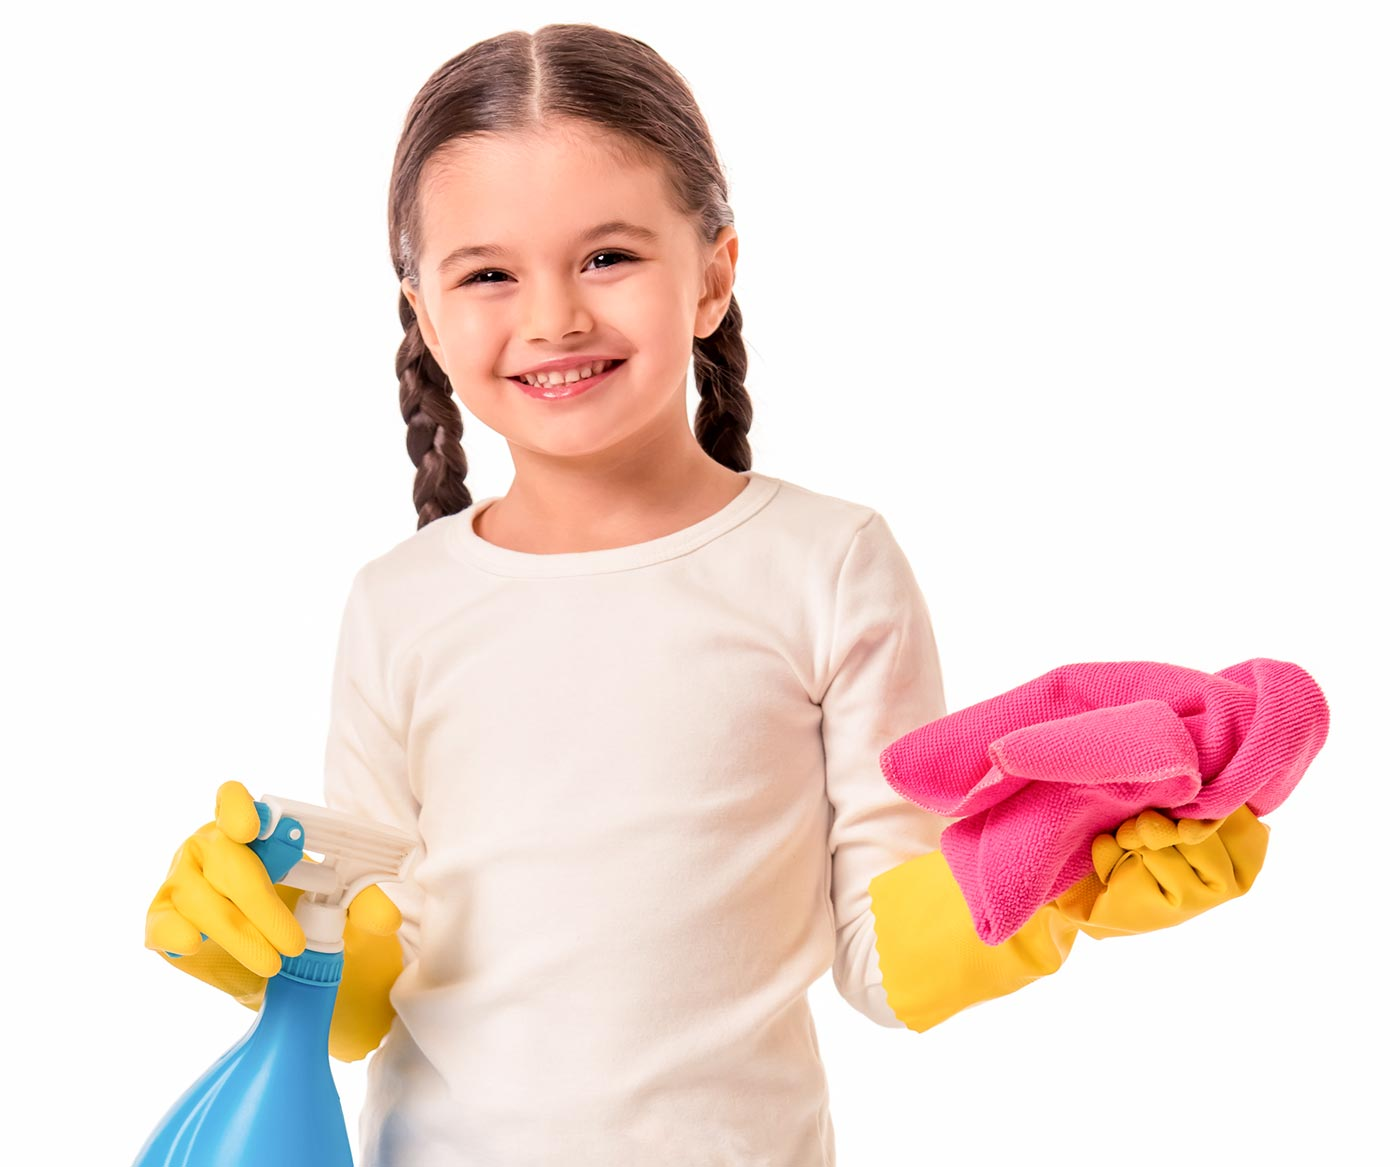 Little girl doing chores